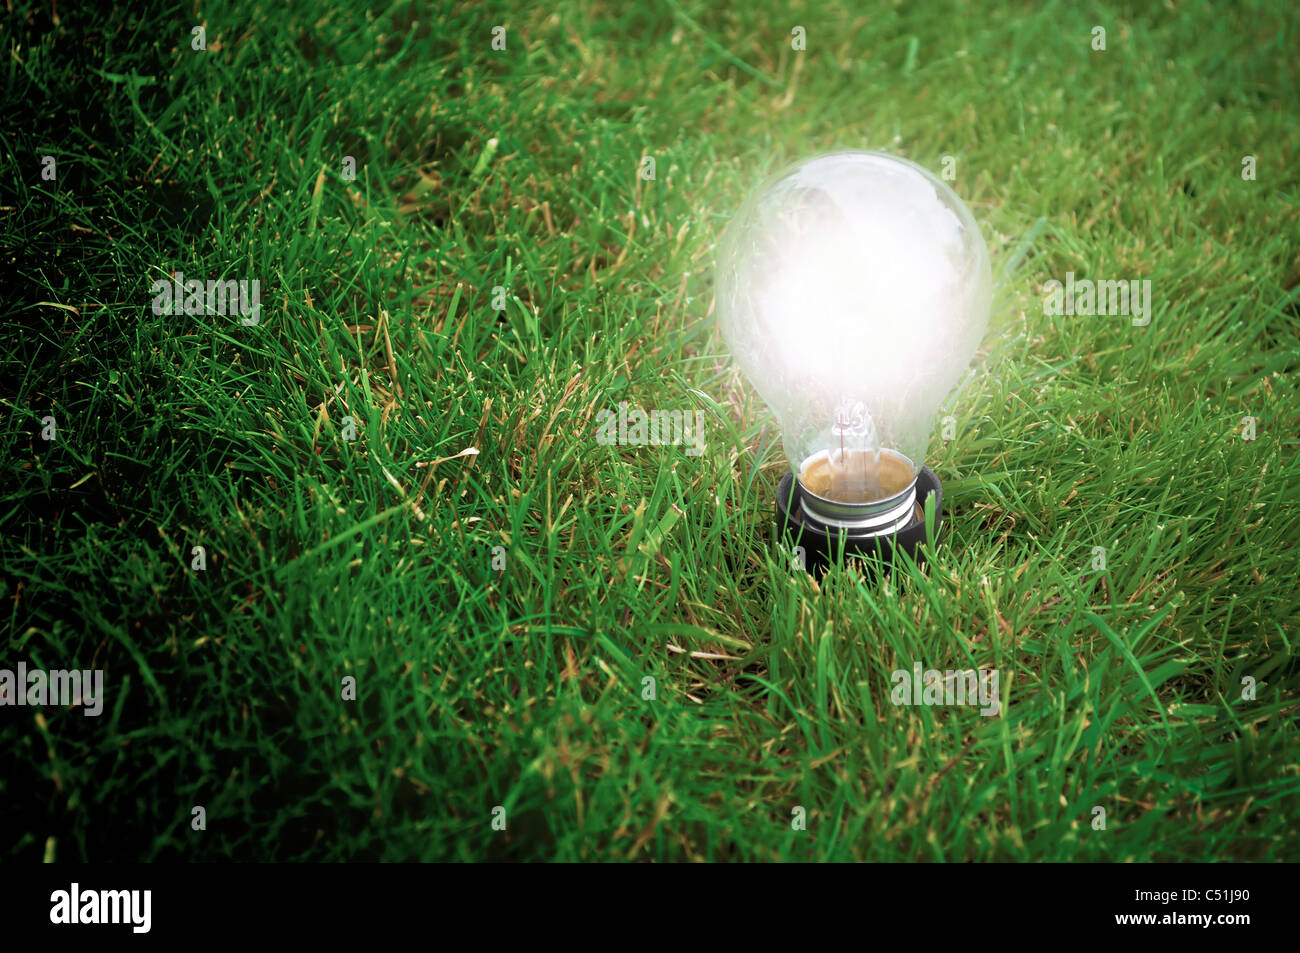 Alternative energy concept - Light bulb glowing in the grass at night - Stock Image